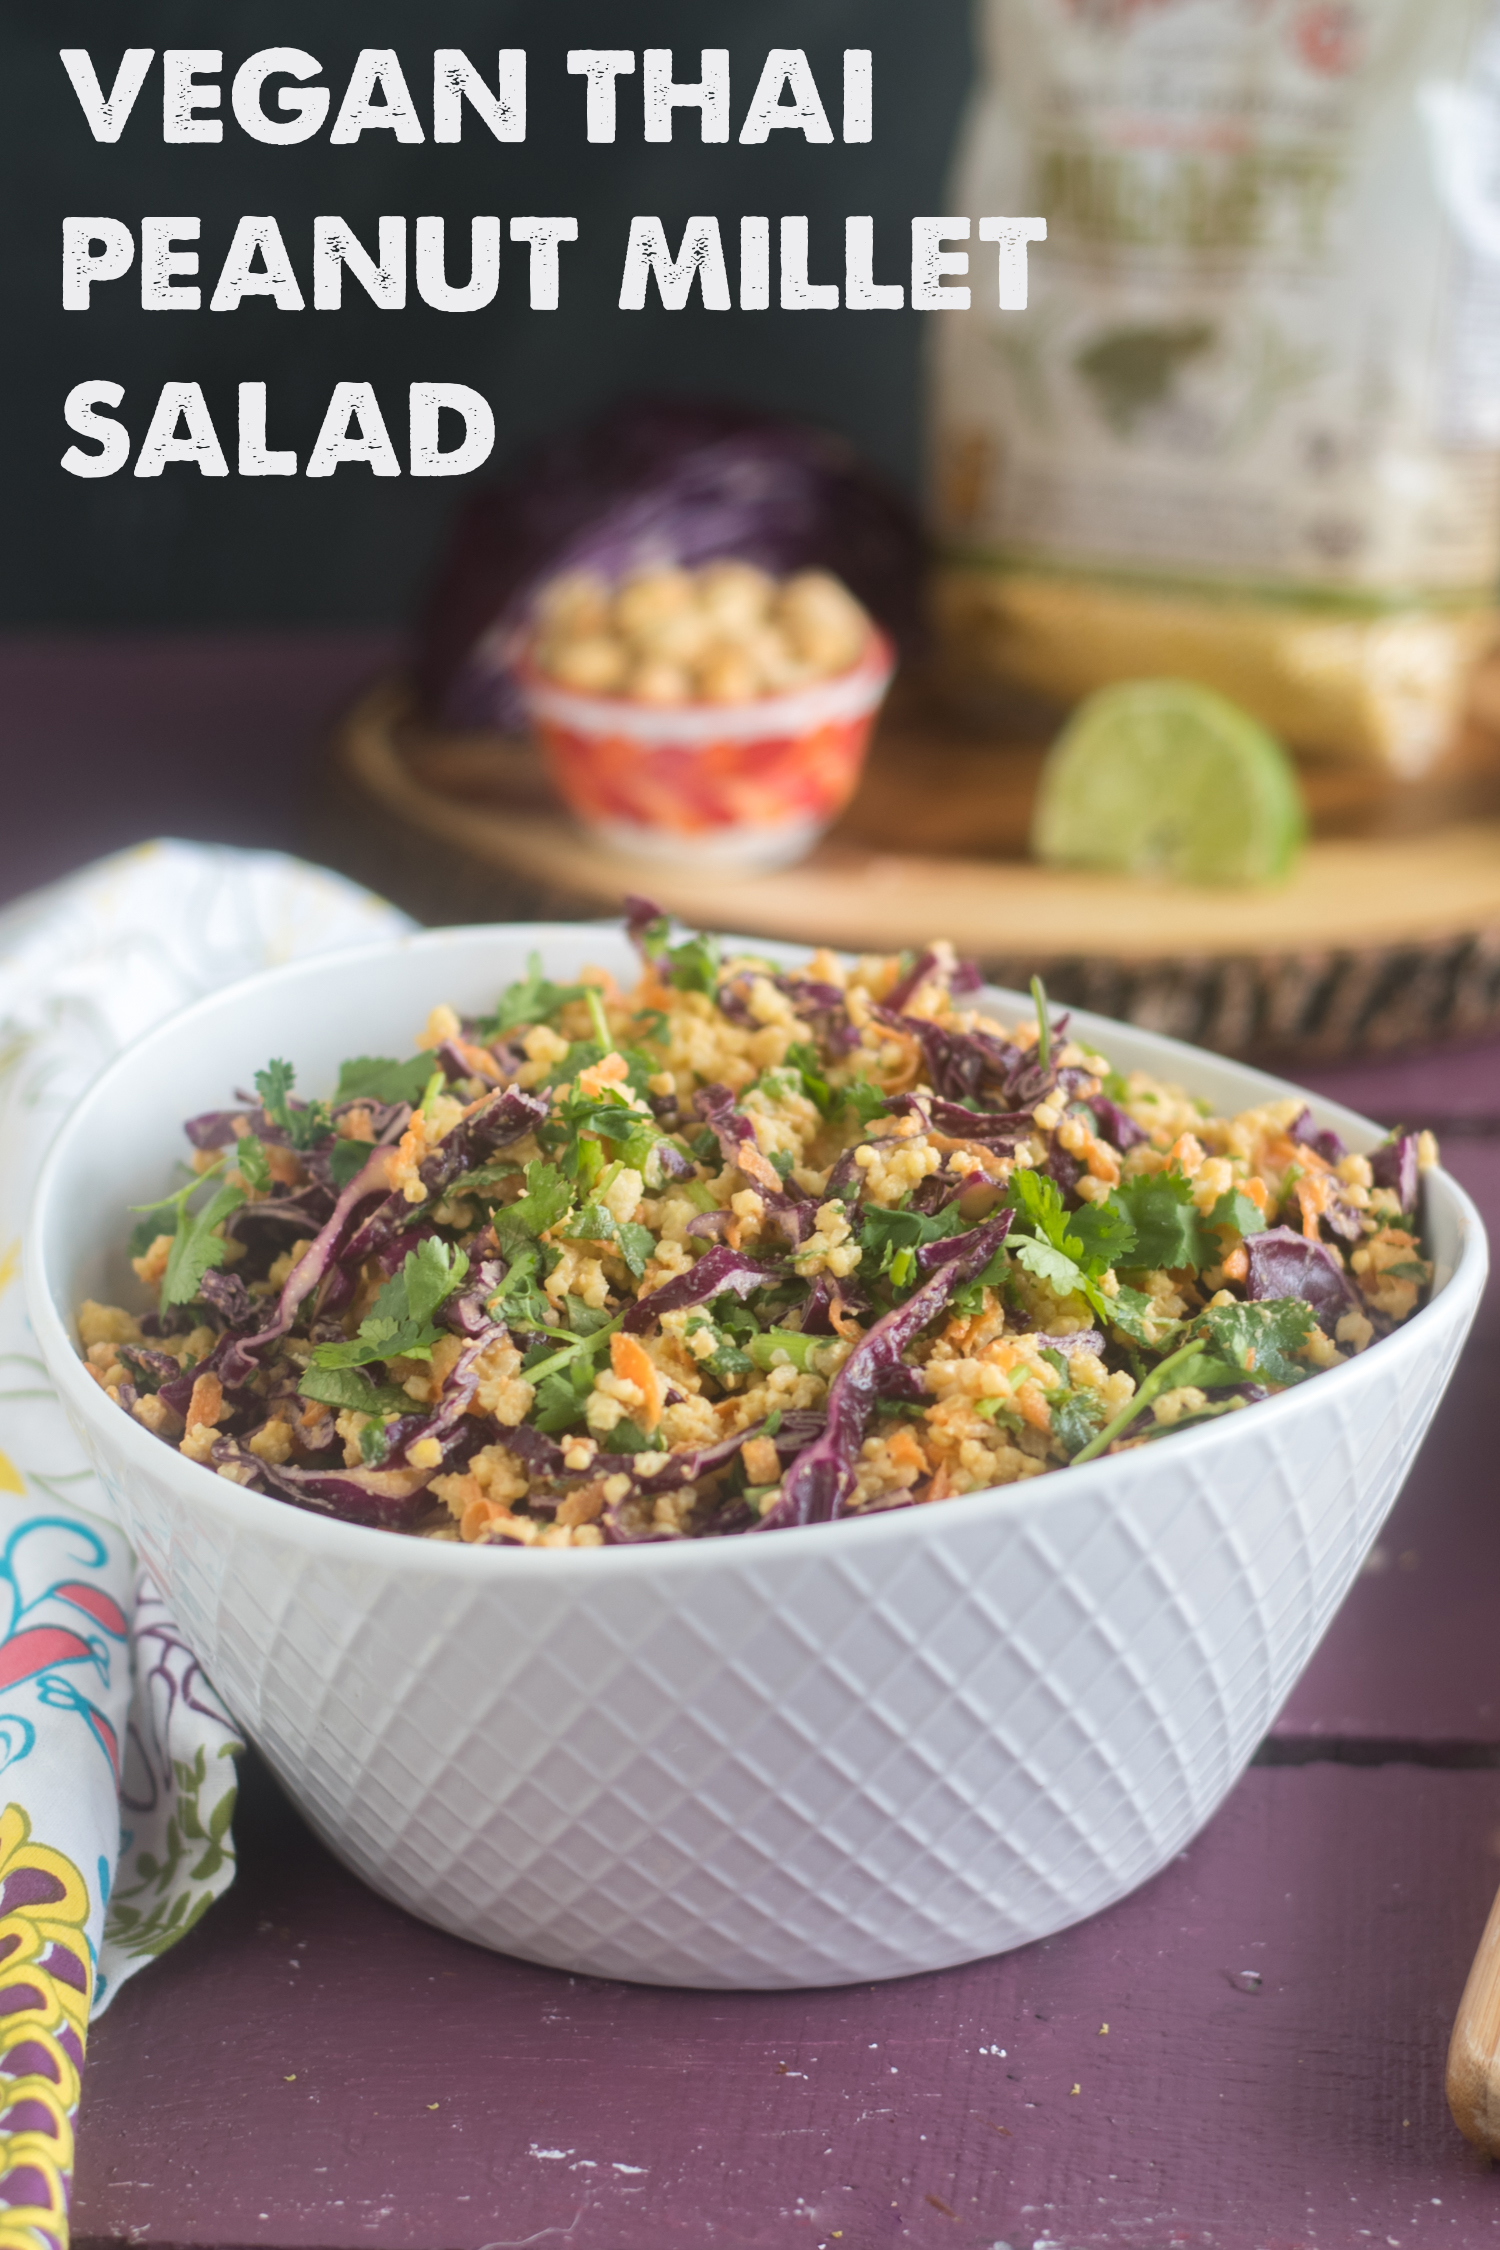 This Vegan Thai Peanut Millet Salad is fresh, budget-friendly, and loaded with nutrients and fiber. #healthy #food #healthyrecipes #vegan #glutenfree #dairyfree #vegan #veganrecipes